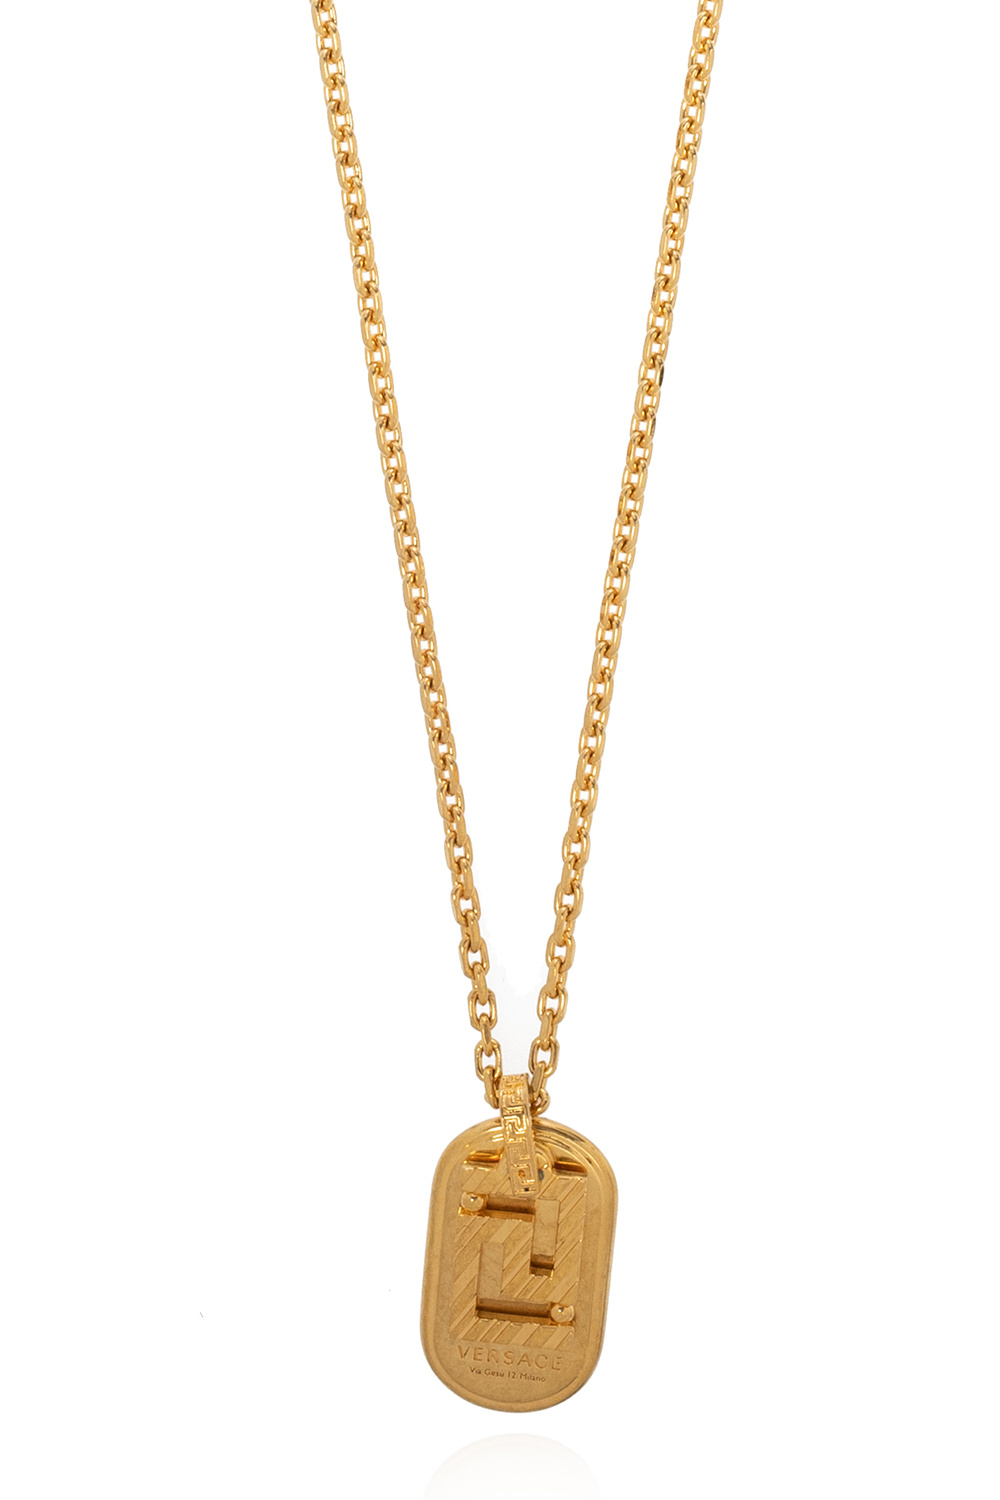 Versace Necklace with pendant